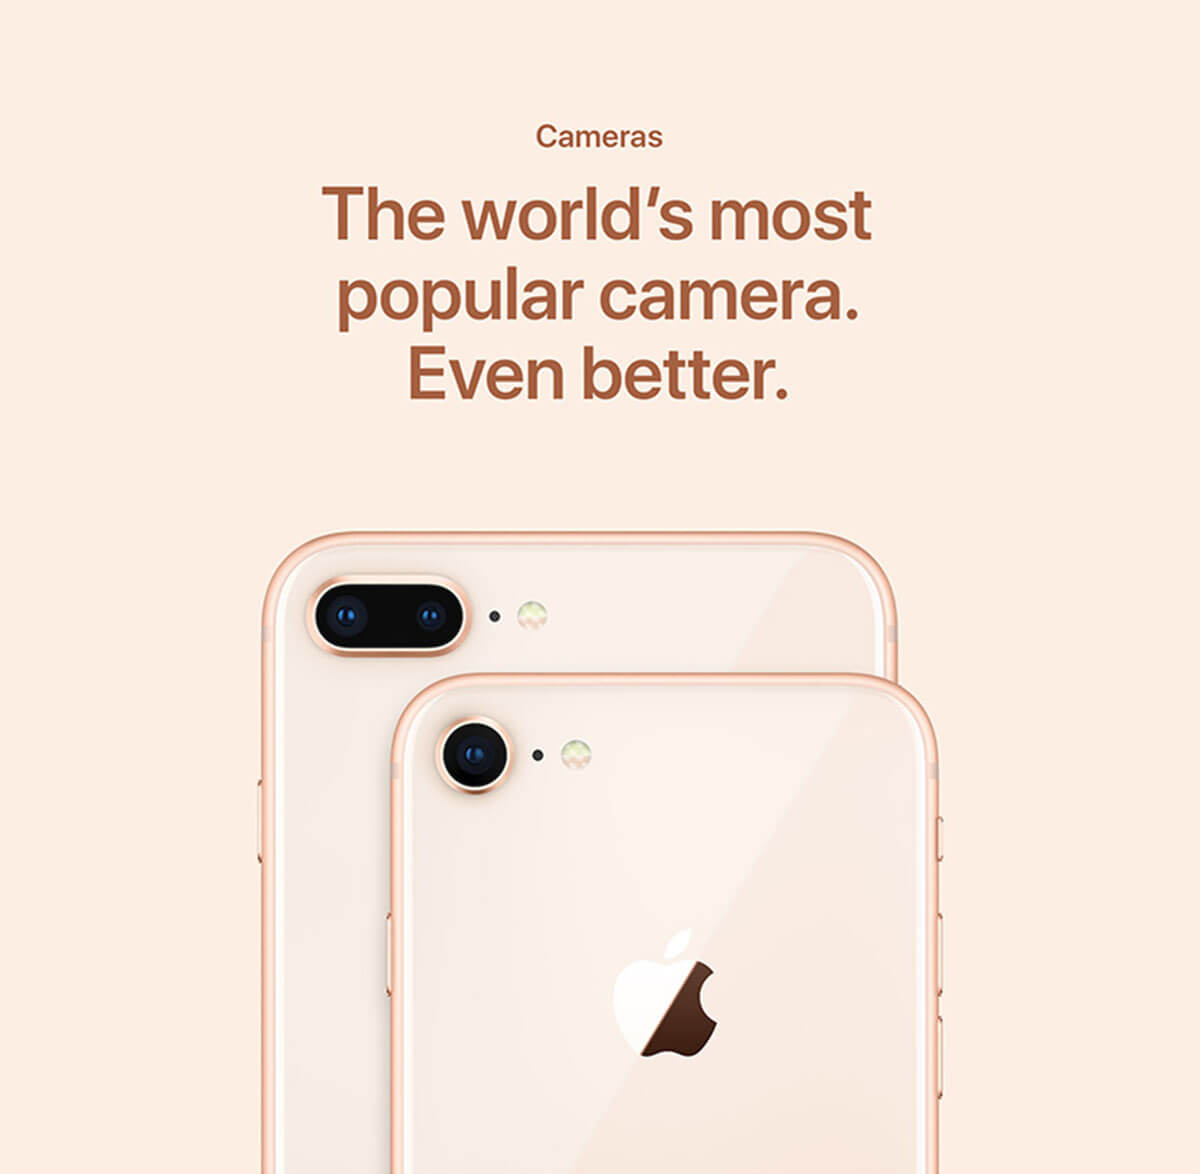 iPhone 8 and iPhone 8 Plus cameras